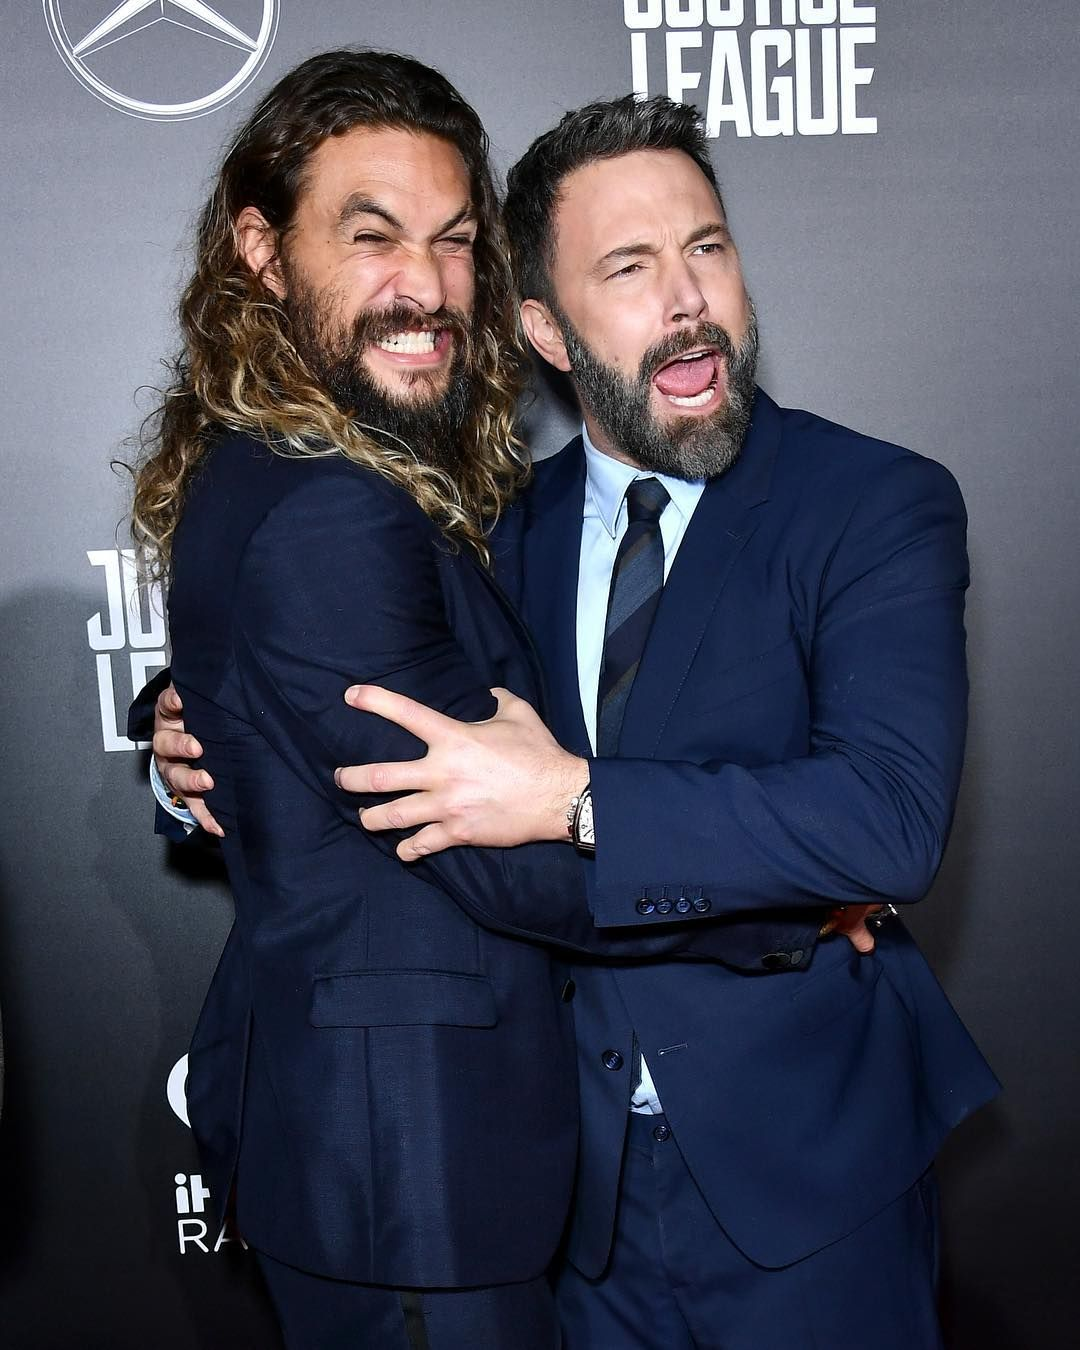 Jason Momoa Prideofgypsies And Benaffleck Hug It Out At The